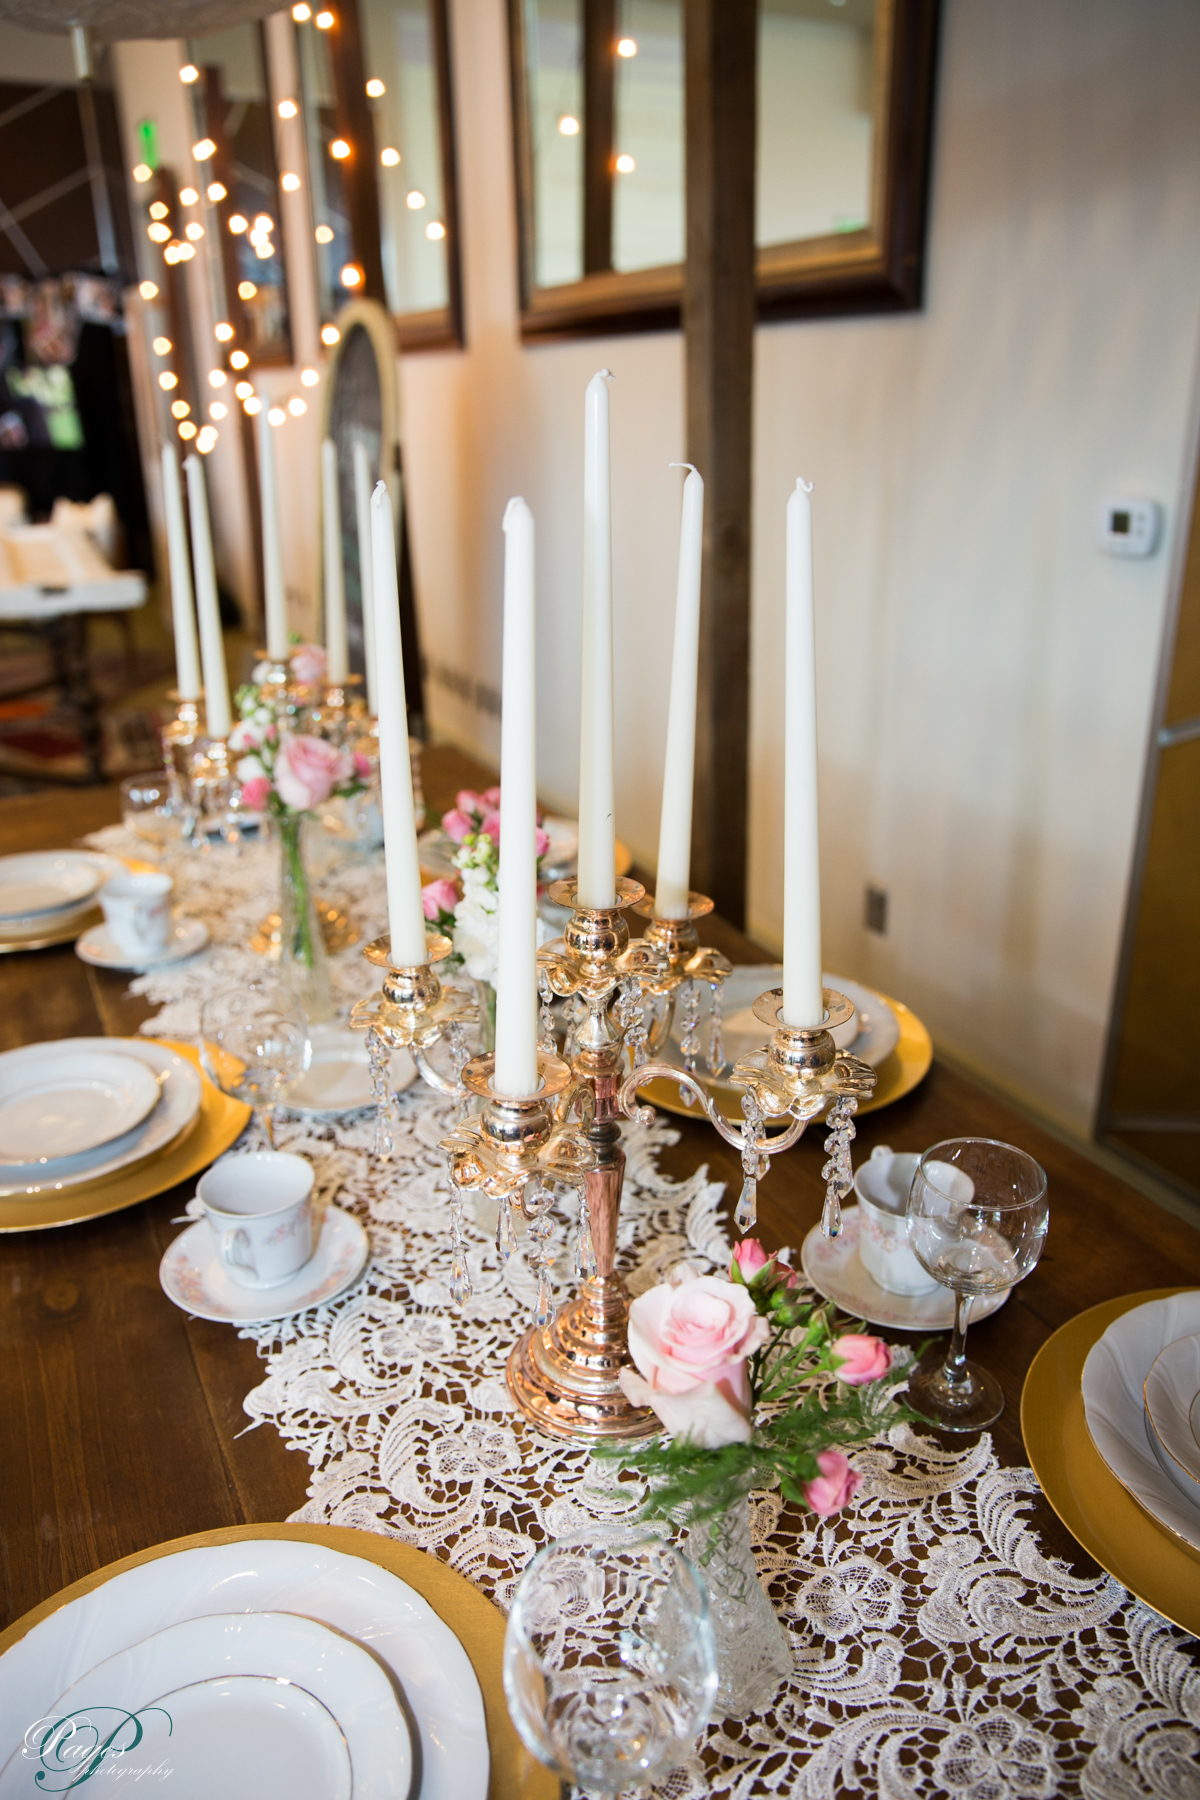 San Diego Wedding Planner, Wedding Planner in San Diego, Wedding Designer San Diego, Wedding Design, Beautiful Wedding Designs, Rustic Chic Wedding Design